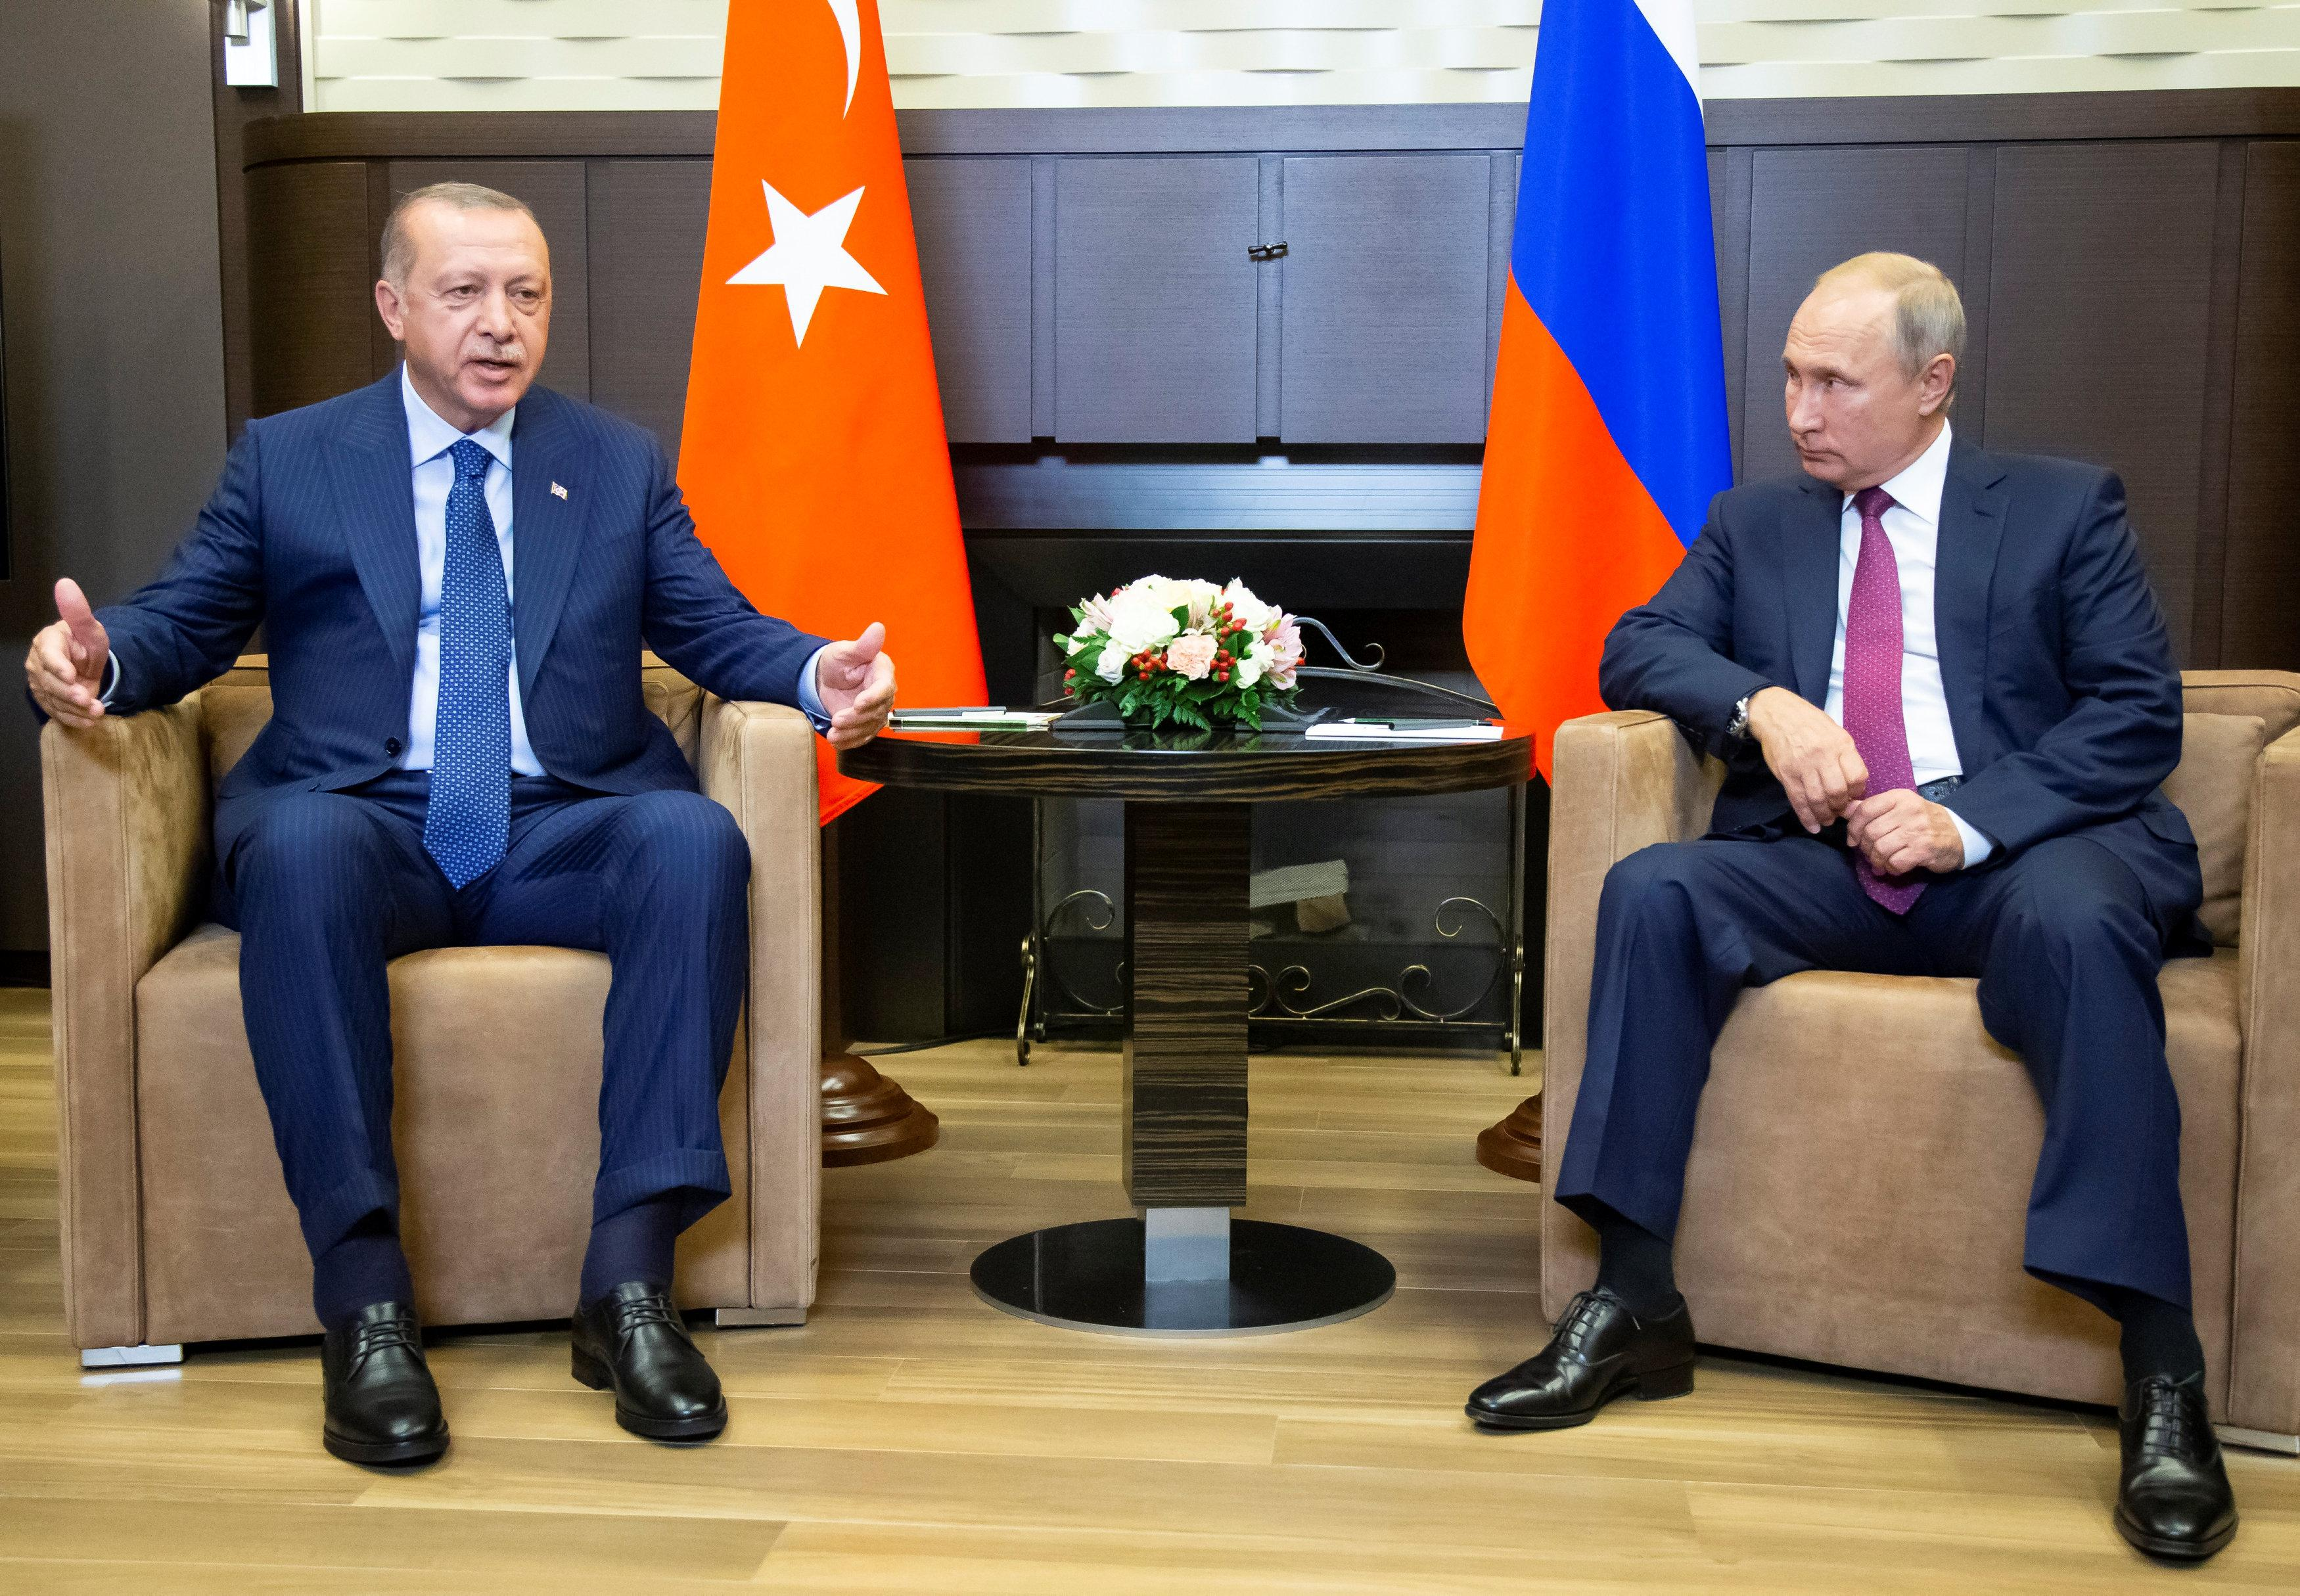 Russian President Vladimir Putin (R) meets with his Turkish counterpart Tayyip Erdogan in Sochi, Russia September 17, 2018. Alexander Zemlianichenko/Pool via